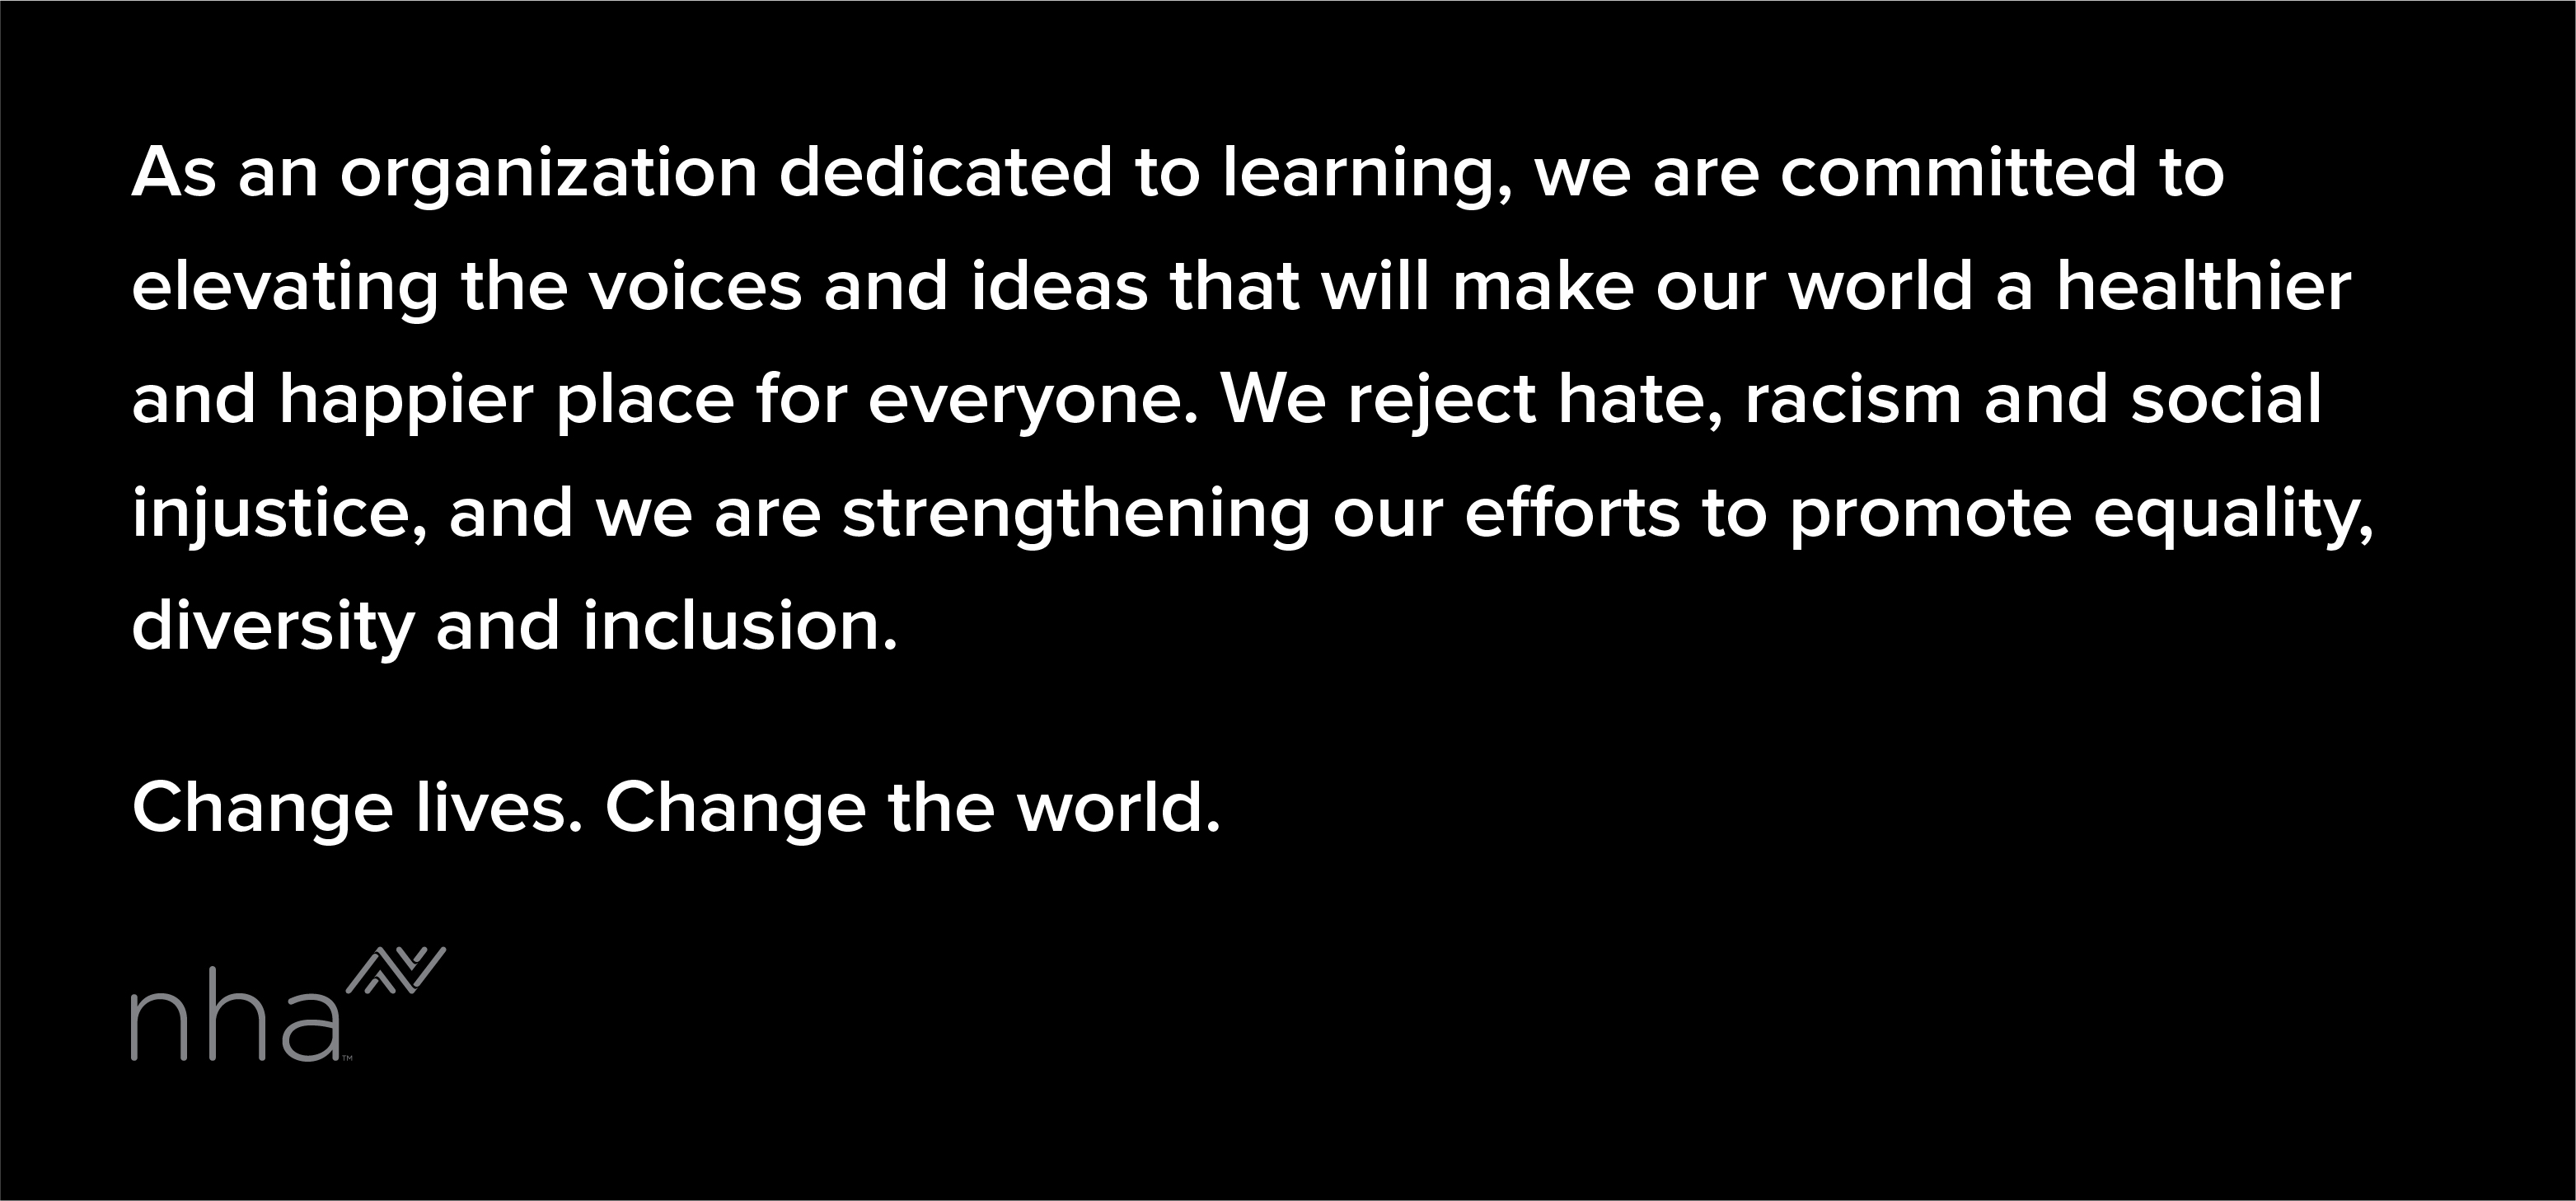 We reject hate recism and social injustice